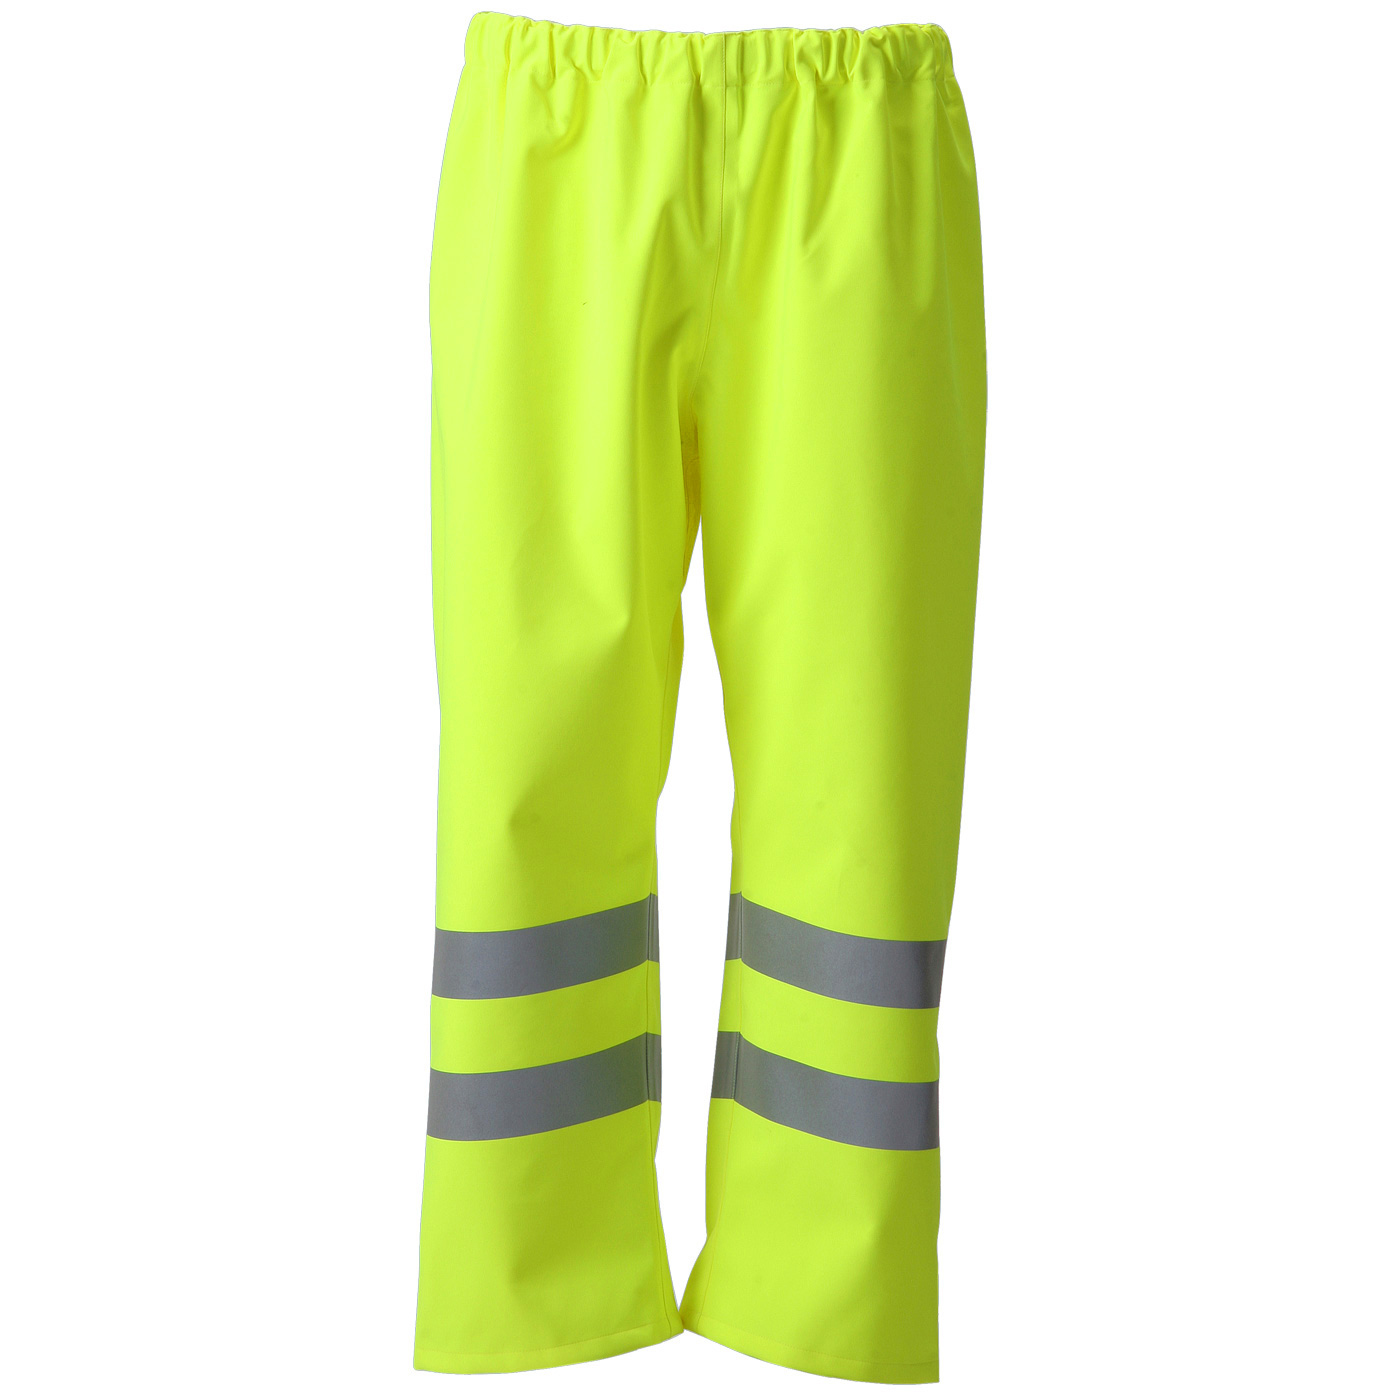 B-Seen Gore-Tex Over Trousers Foul Weather L Saturn Yellow Ref GTHV160SYL Up to 3 Day Leadtime